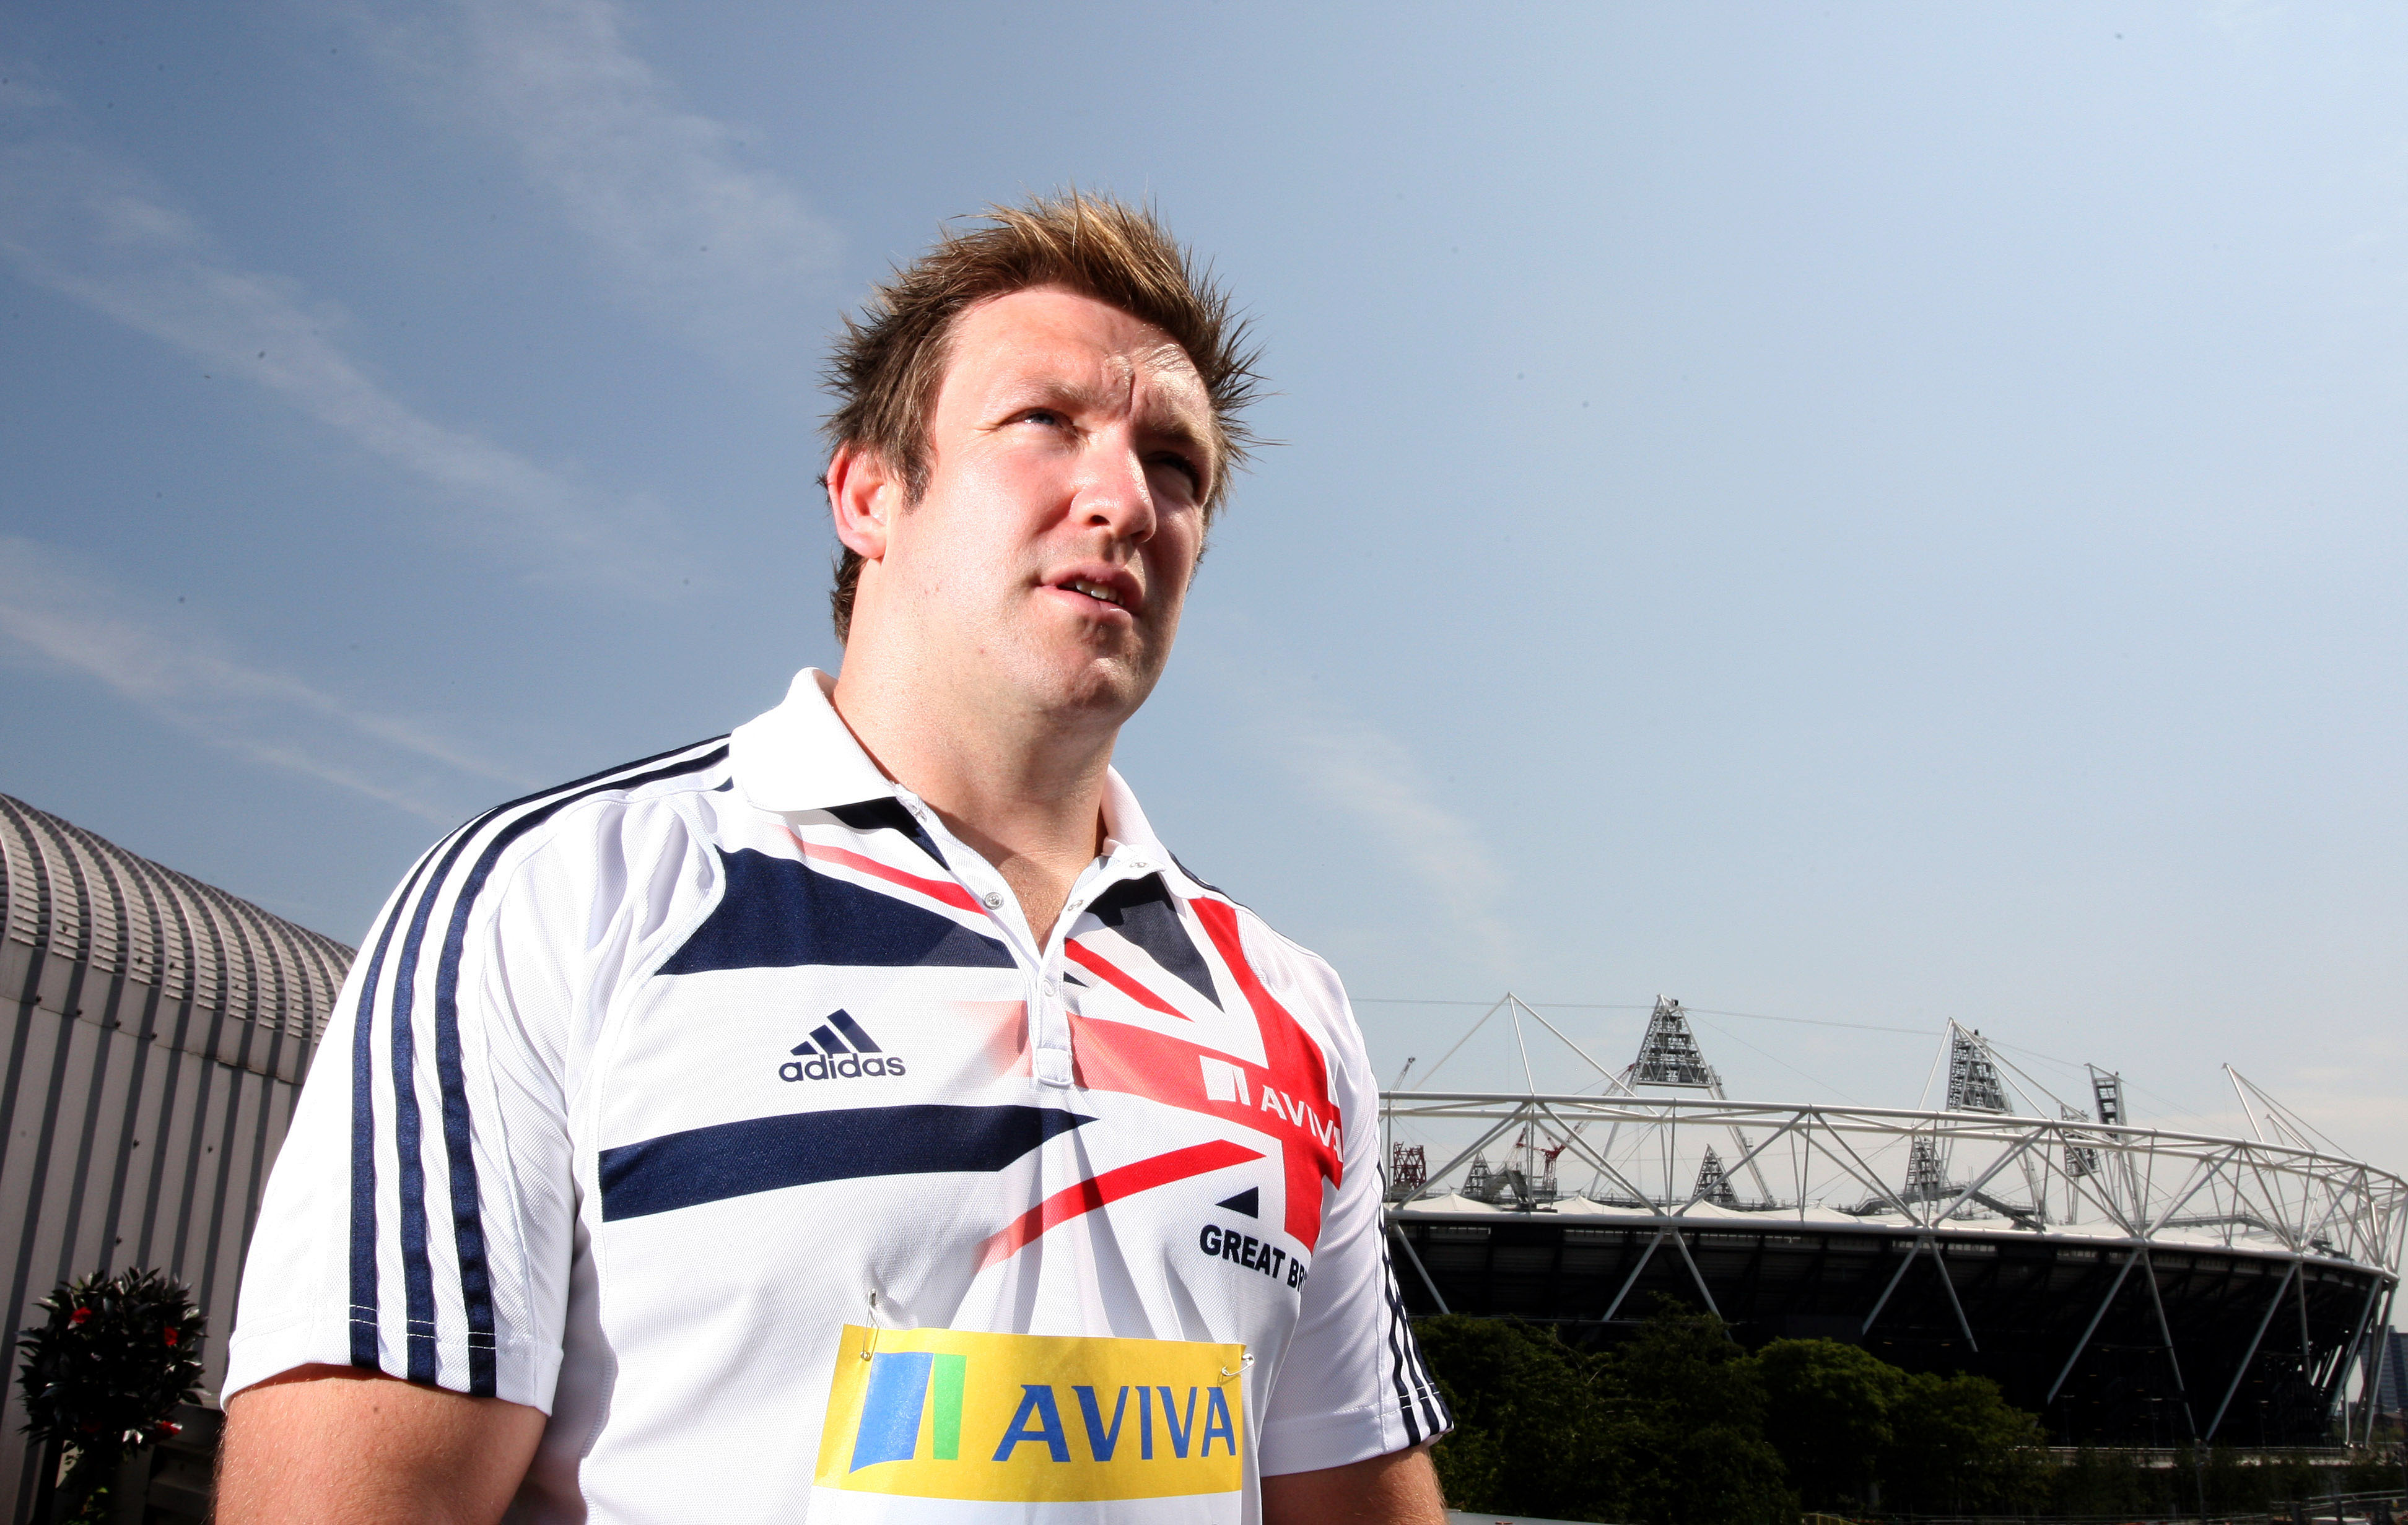 Paralympian Dan Greaves hopeful 2017 decision will keep stars in the sport